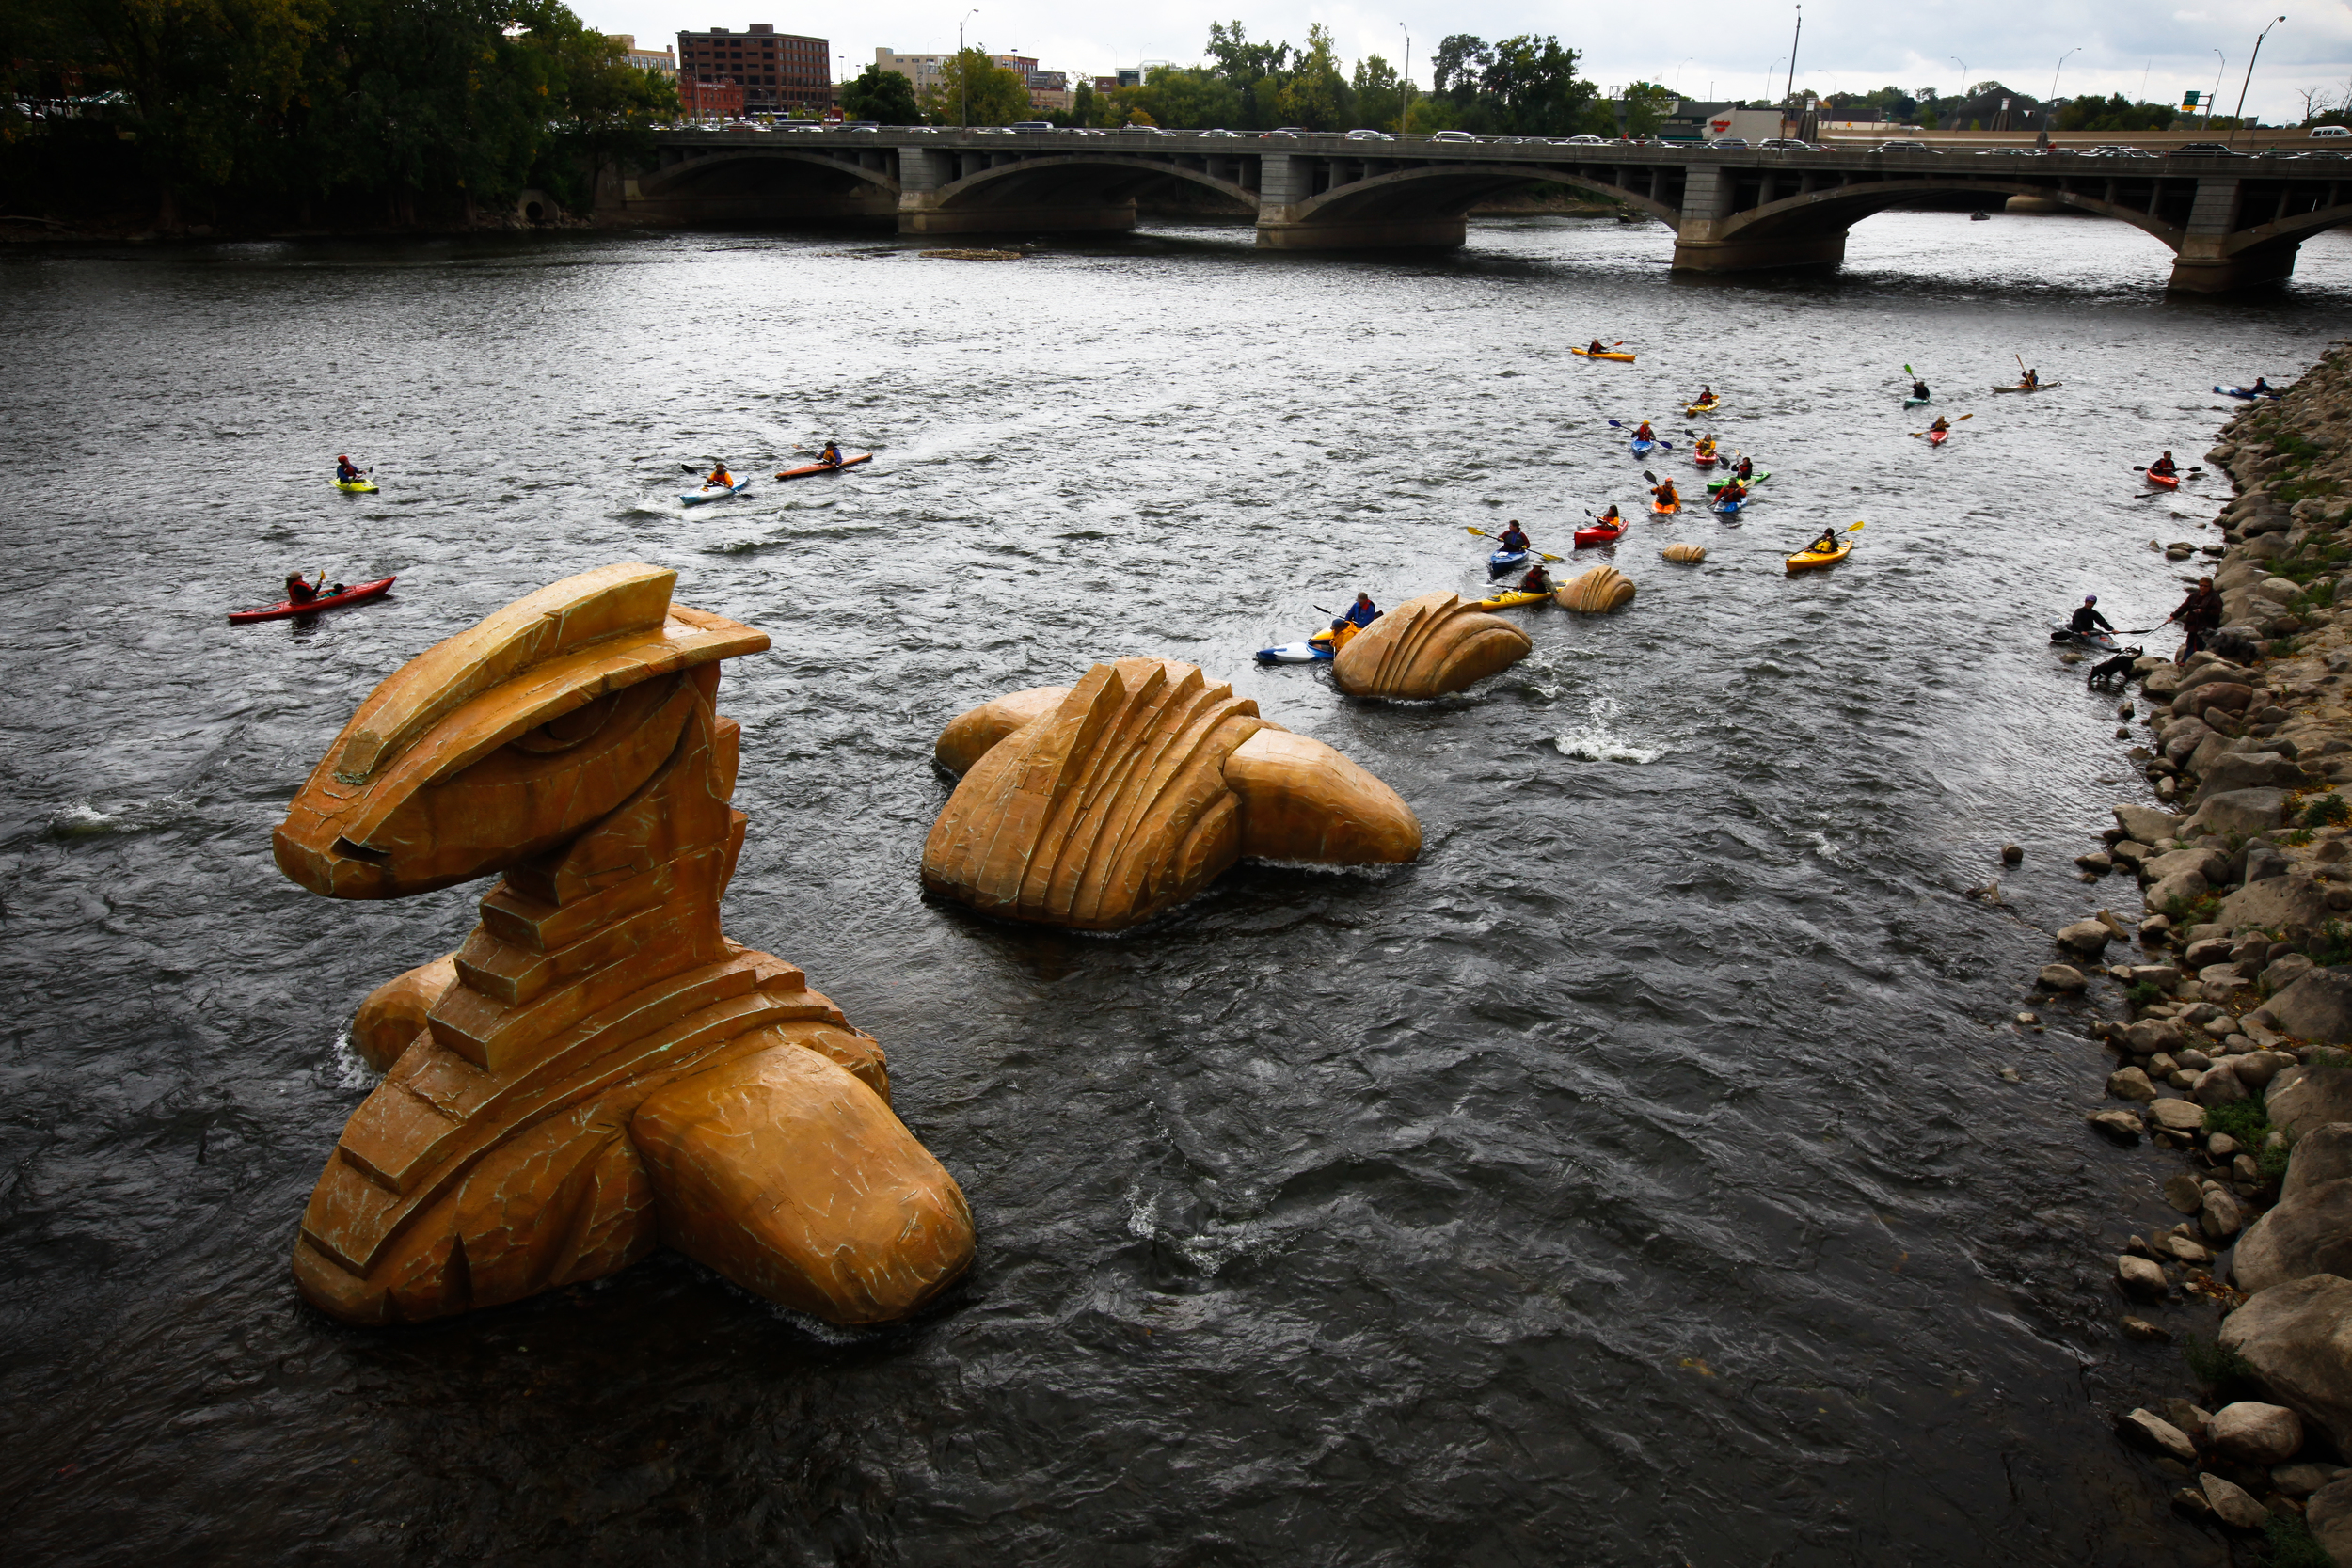 kayakers during Art Prize in Grand Rapids